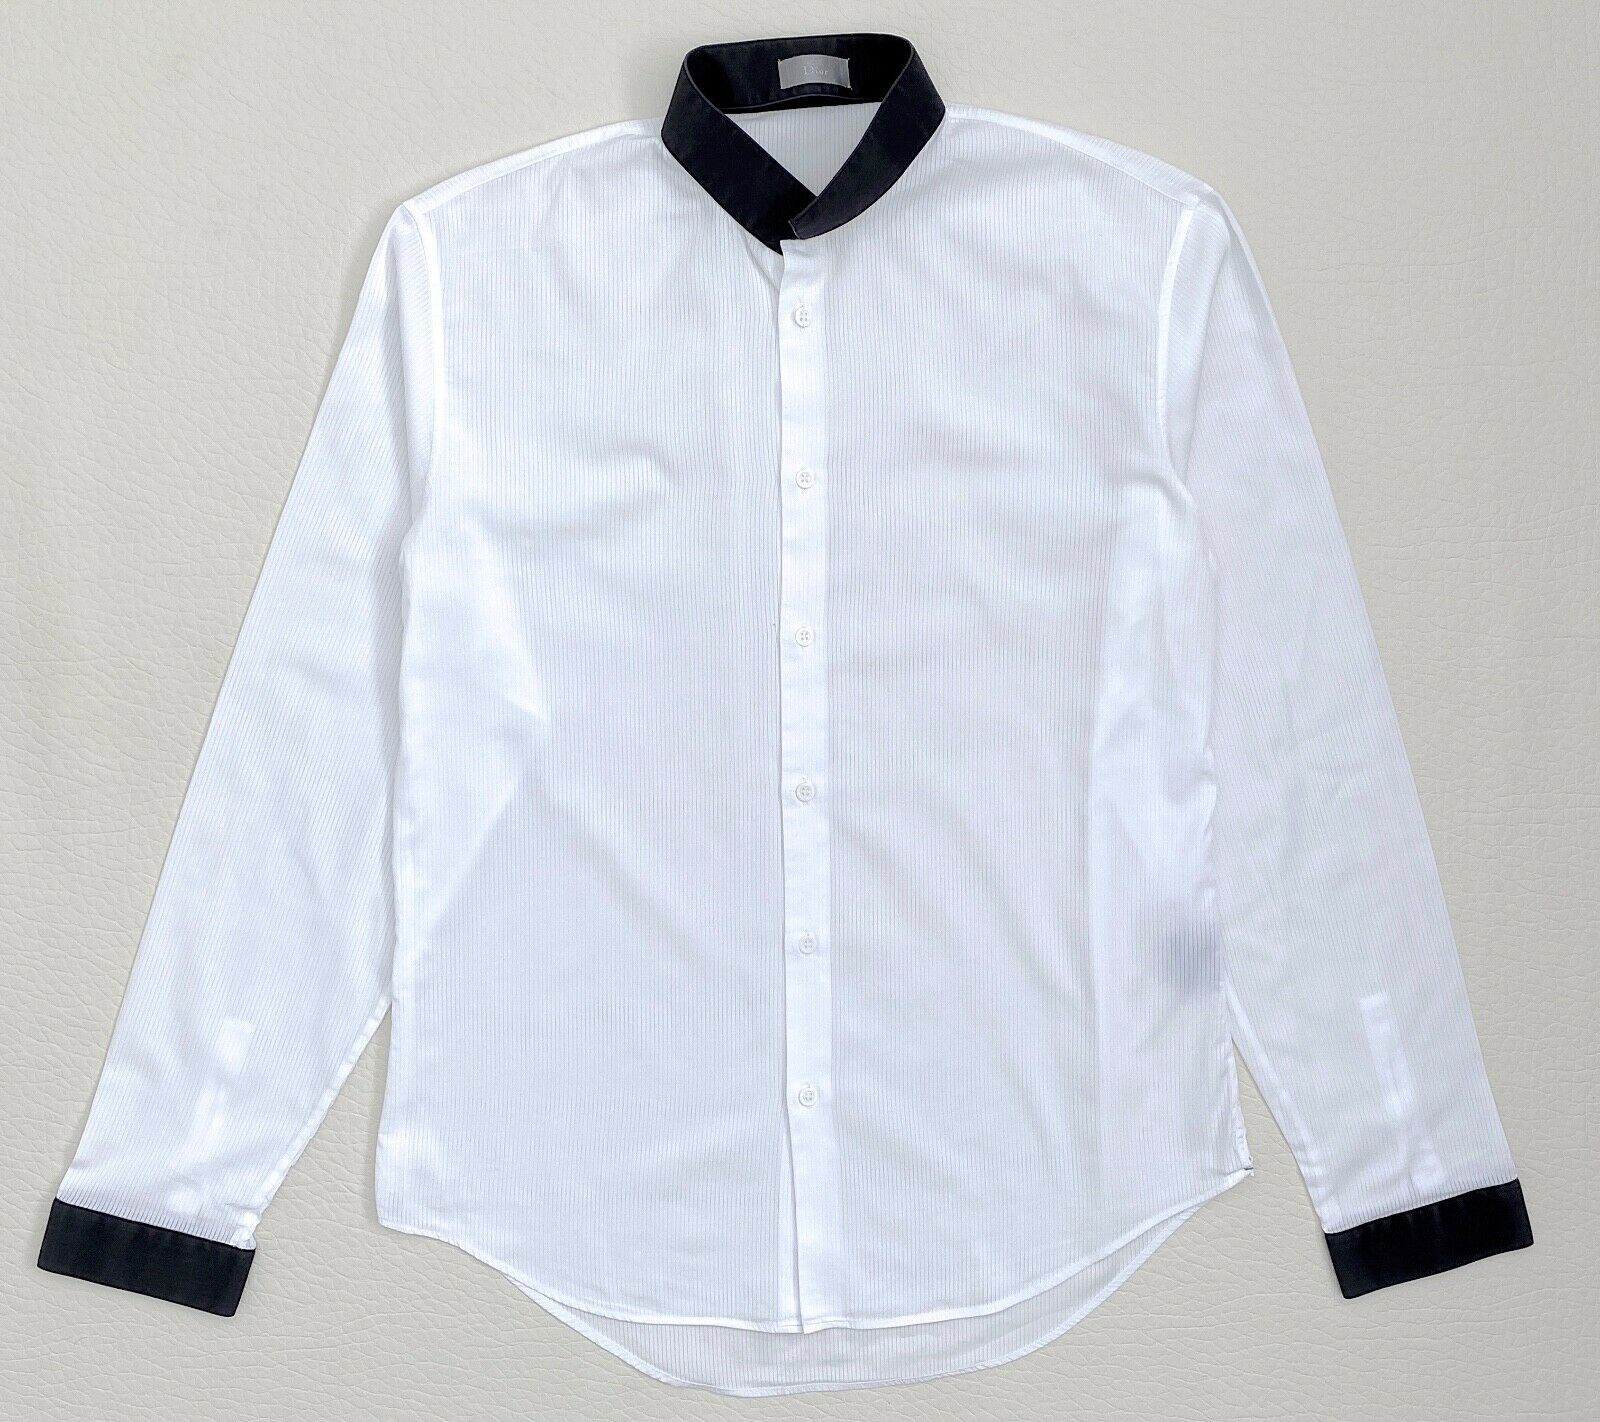 Dior Homme by Hedi Slimane white shirt-inverted collar Sz.41 - 16